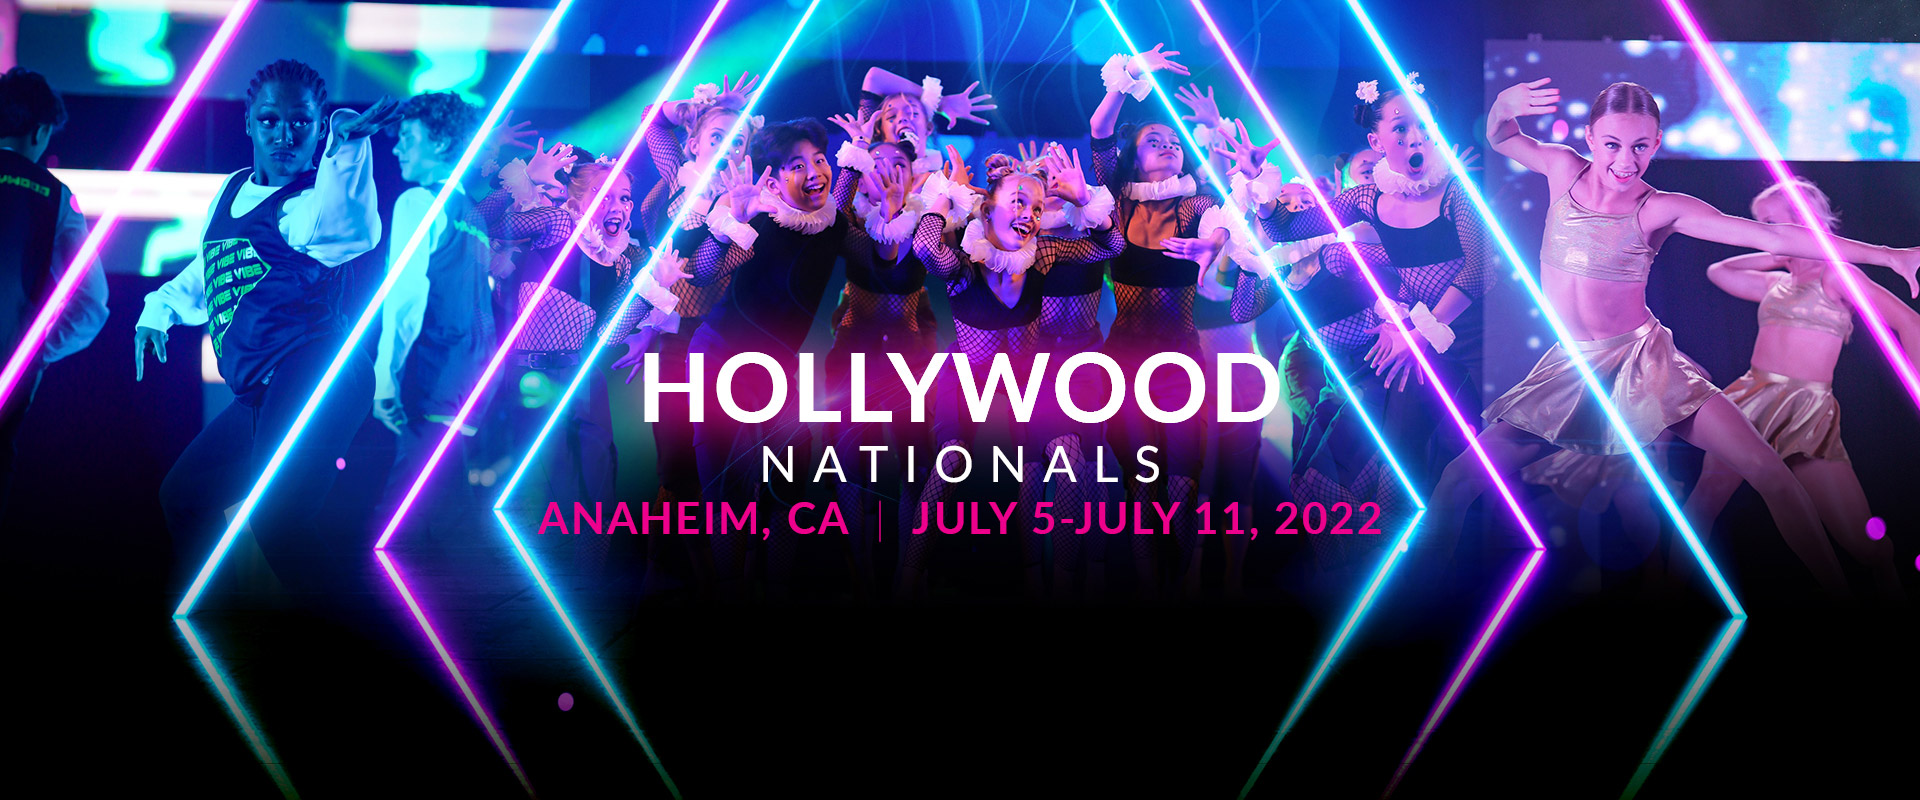 Hollywood Vibe 2022 Hollywood Nationals Anaheim CA